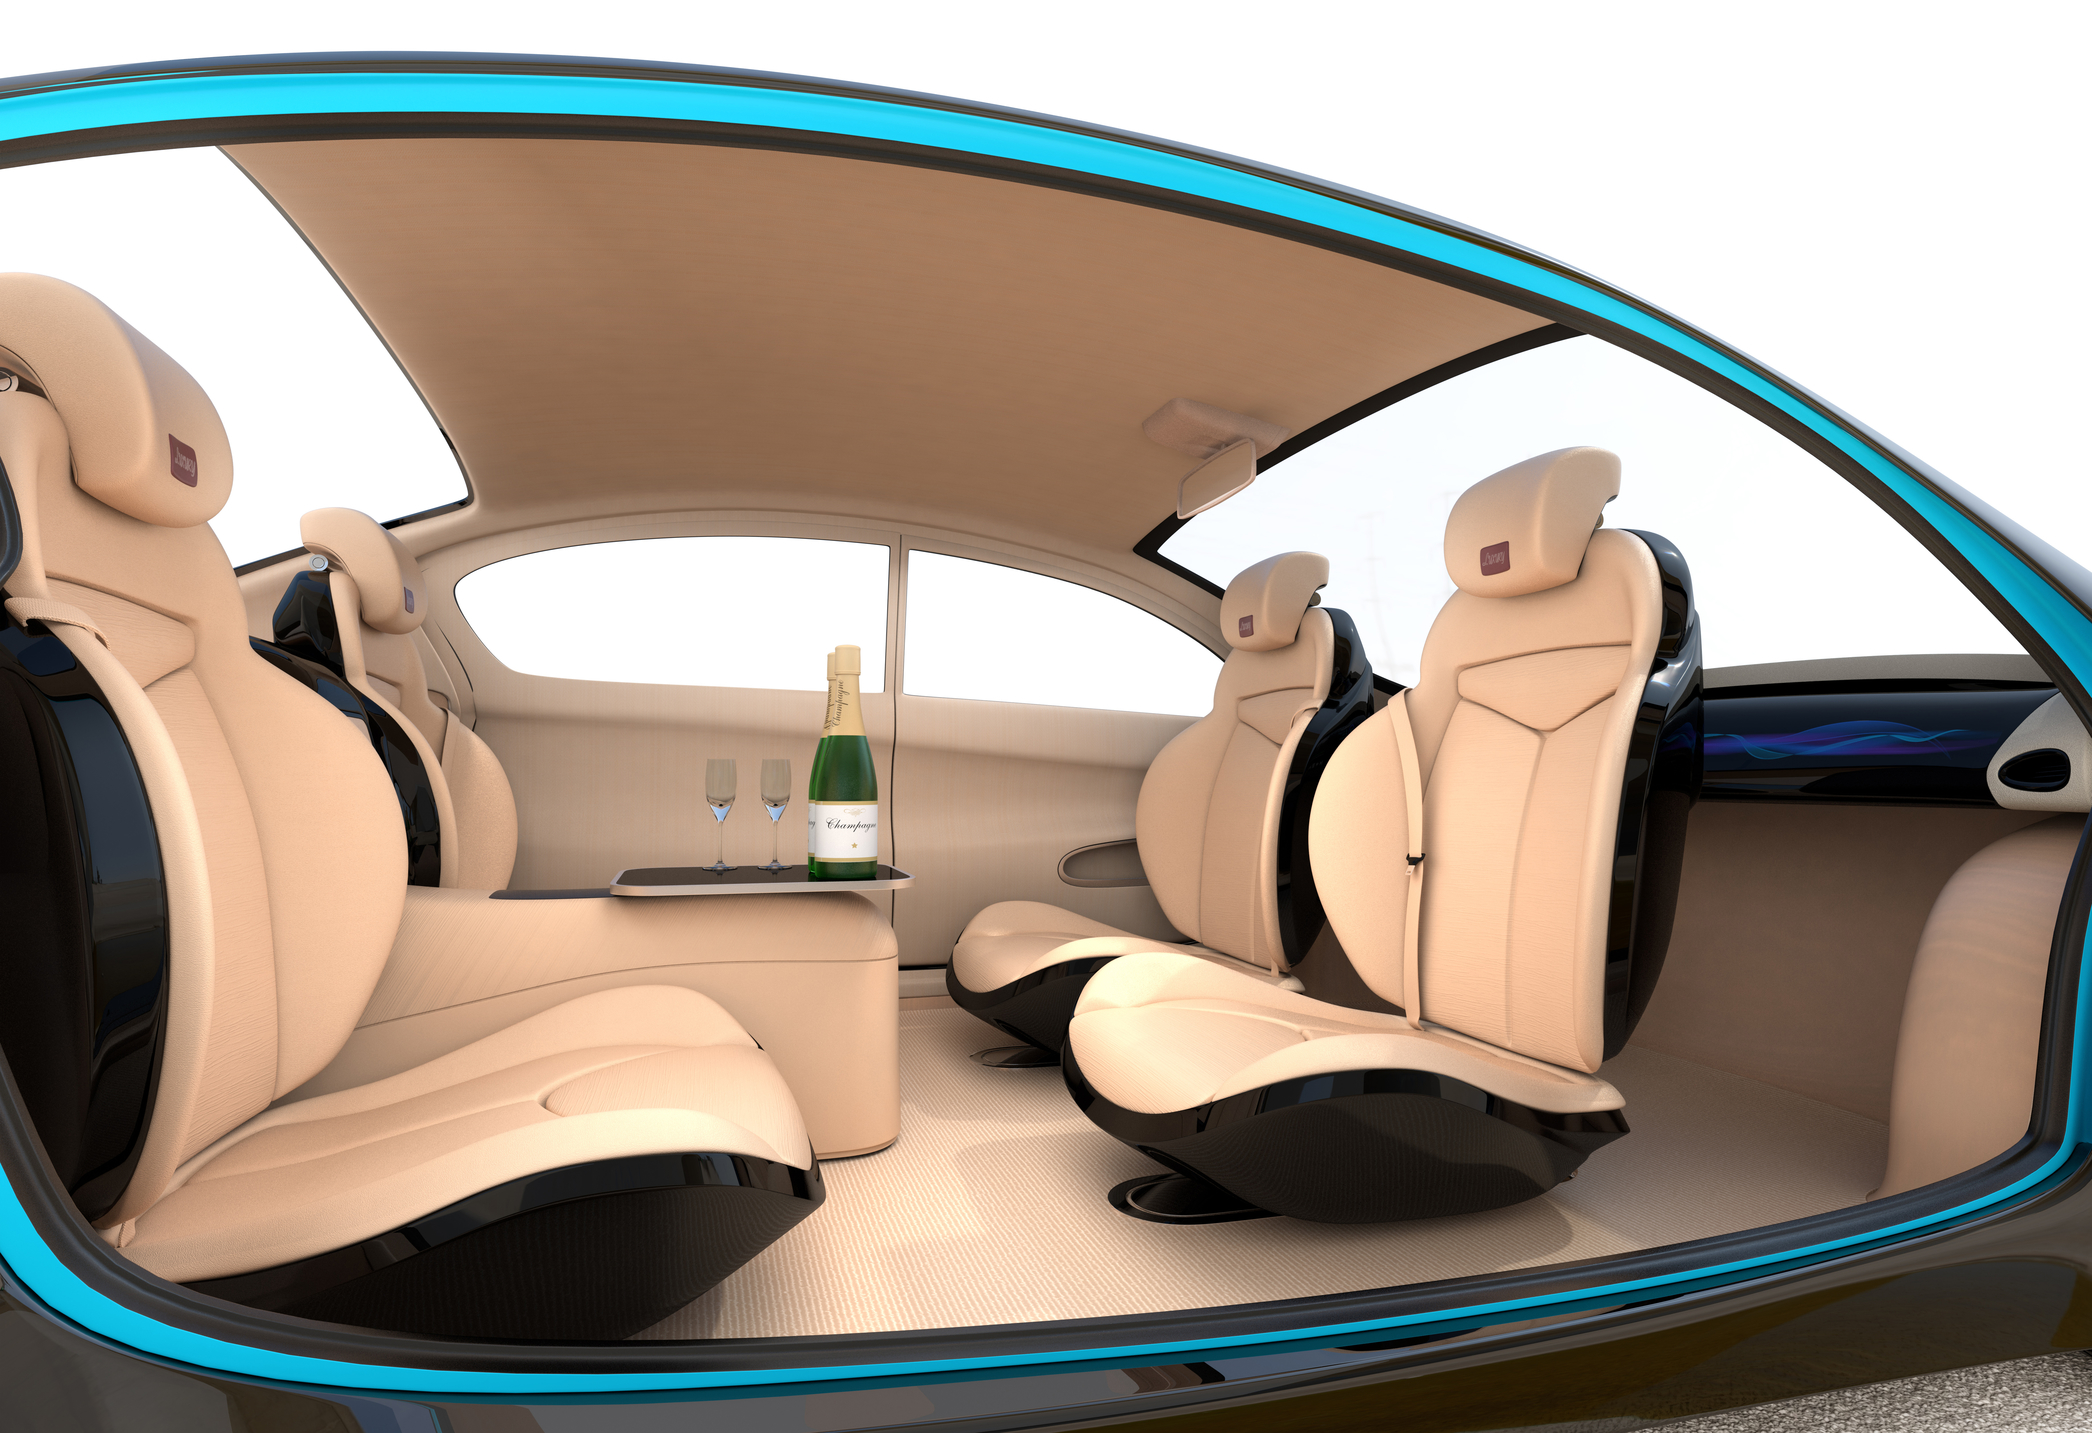 Self driving cars and ohio dui columbus ovidui attorney blog driverless car interior with champaign bottles solutioingenieria Gallery